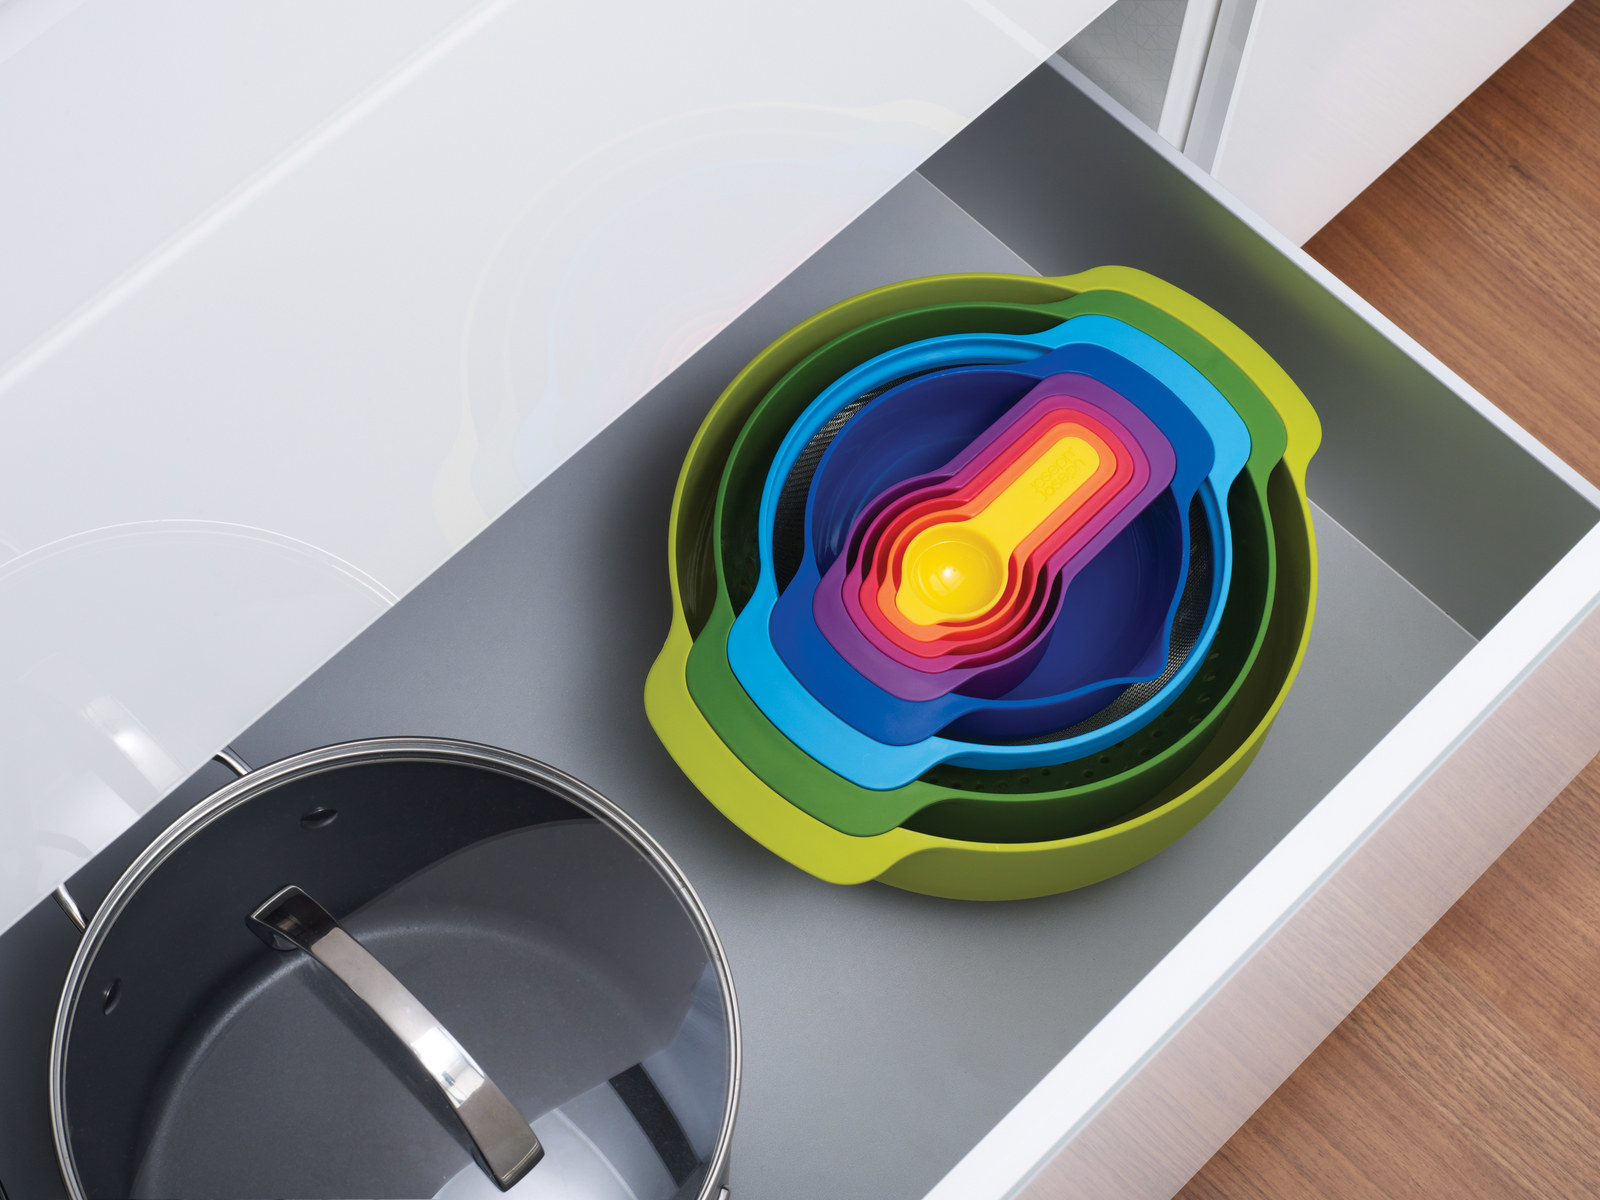 multi-colored nesting bowls in a drawer